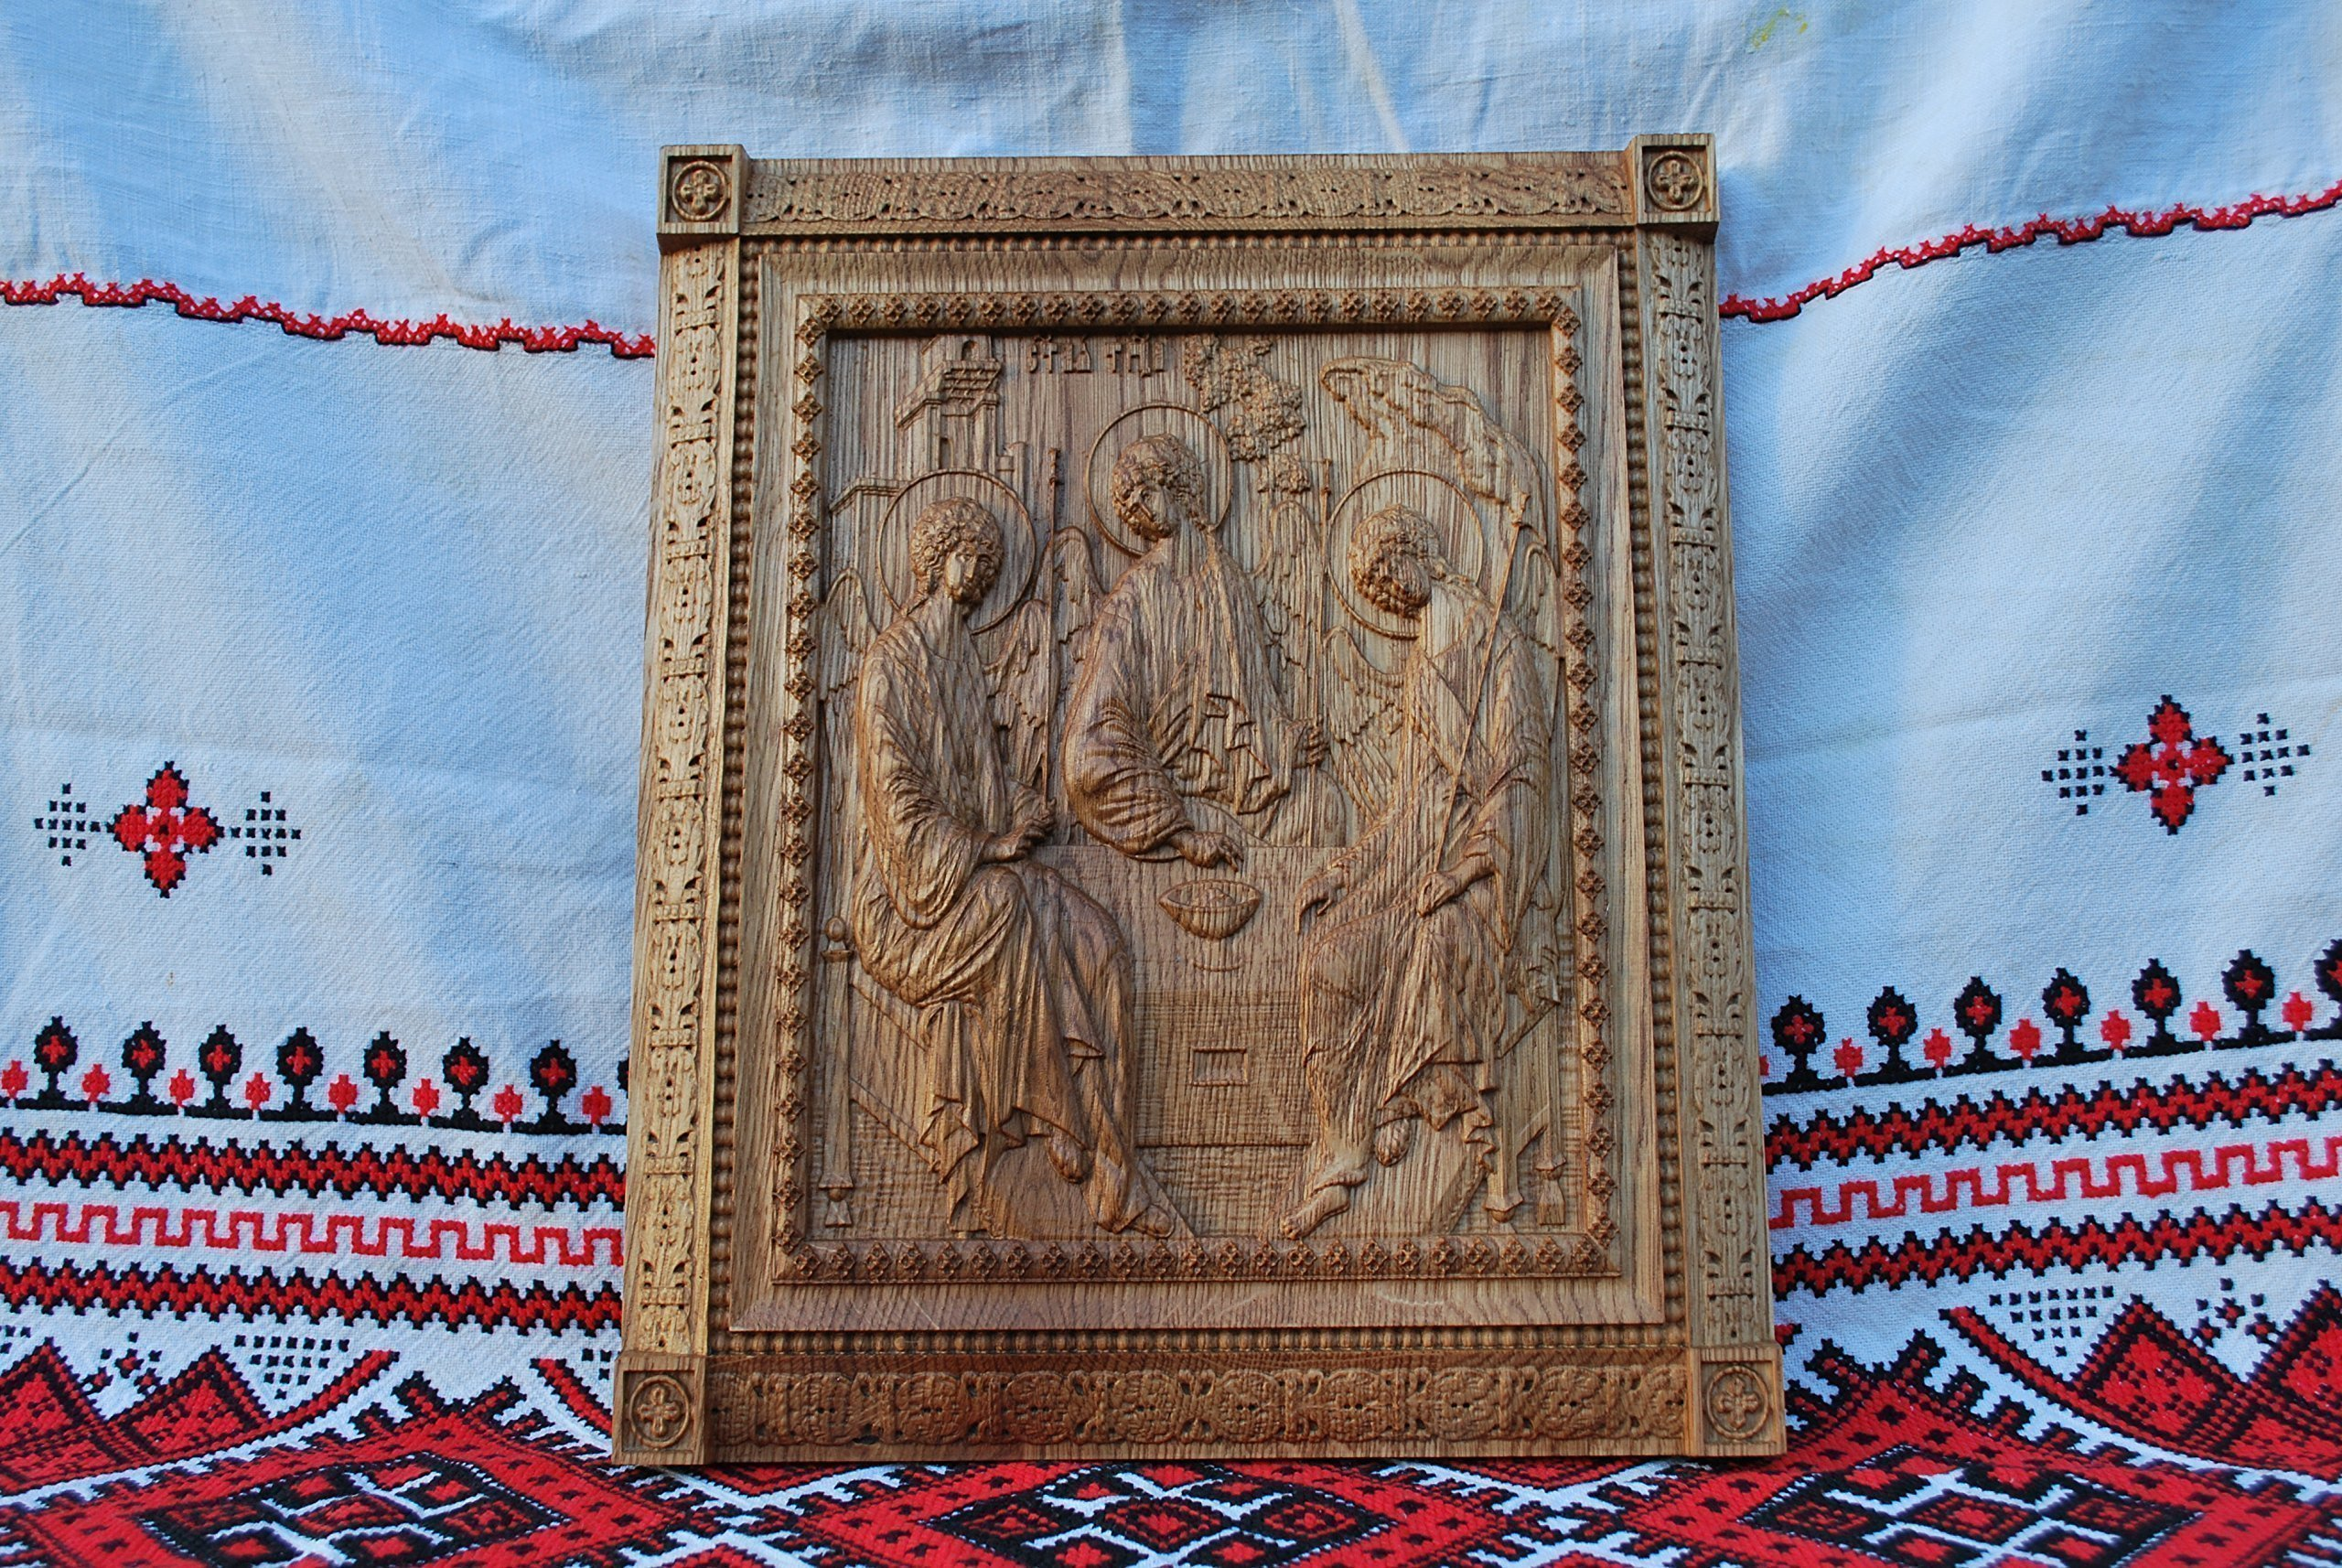 Holy Trinity Icon personalized religious gift Wood Carved religious wall plaque FREE ENGRAVING FREE SHIPPING by Woodenicons Artworkshop ''Tree of life'' (Image #7)